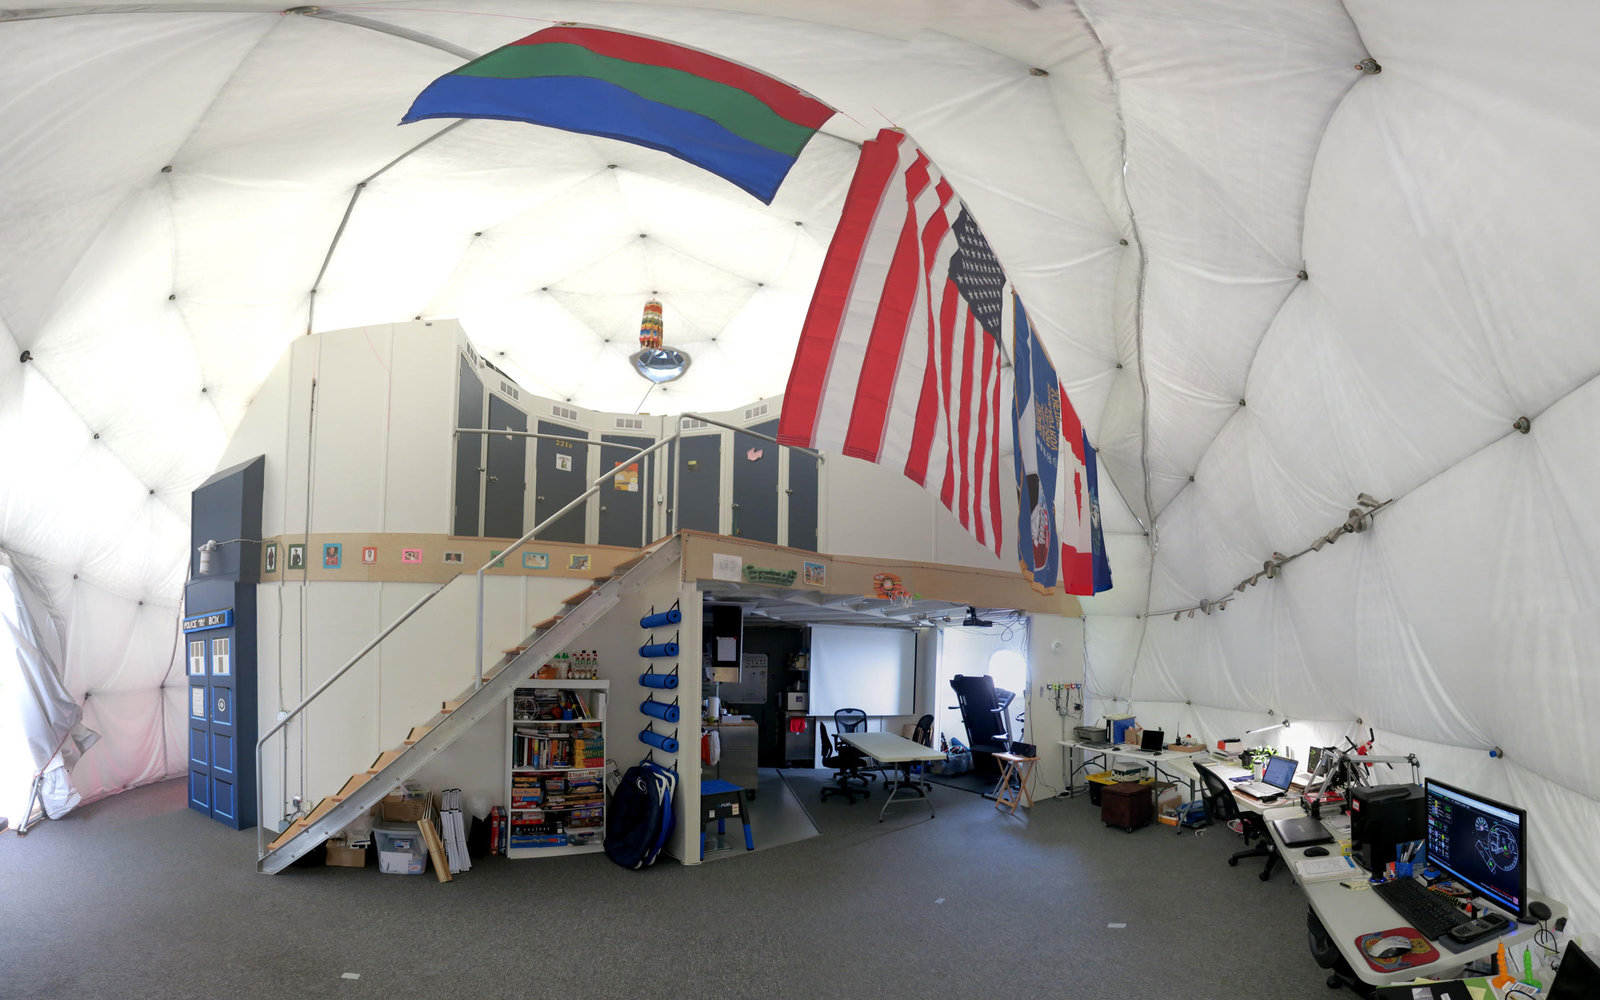 Simulating life on Mars, 6 scientists end Hawaii dome experiment